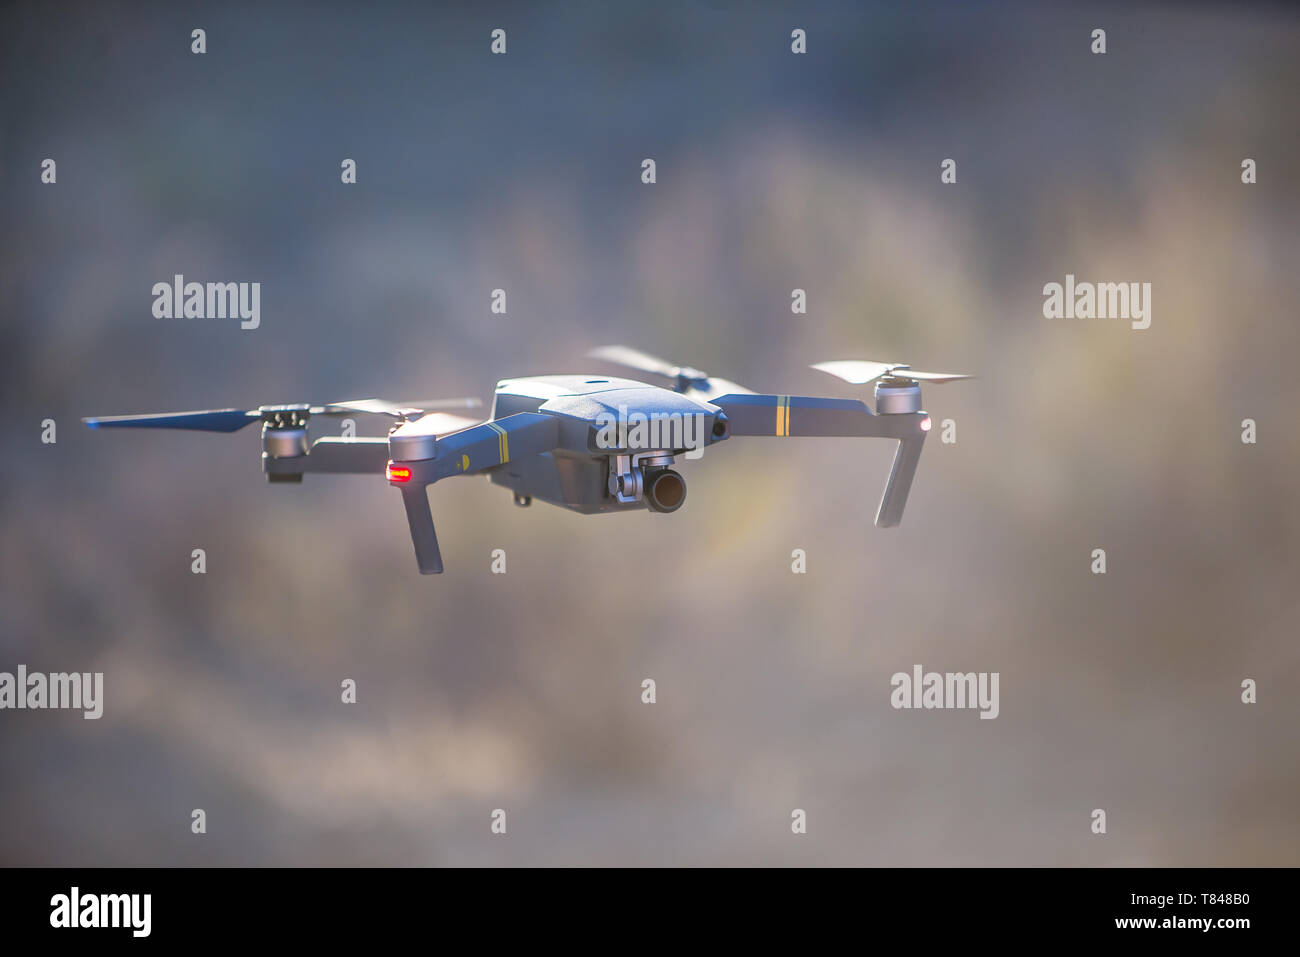 Drone (unmanned aerial vehicle) flying mid air, shallow focus - Stock Image